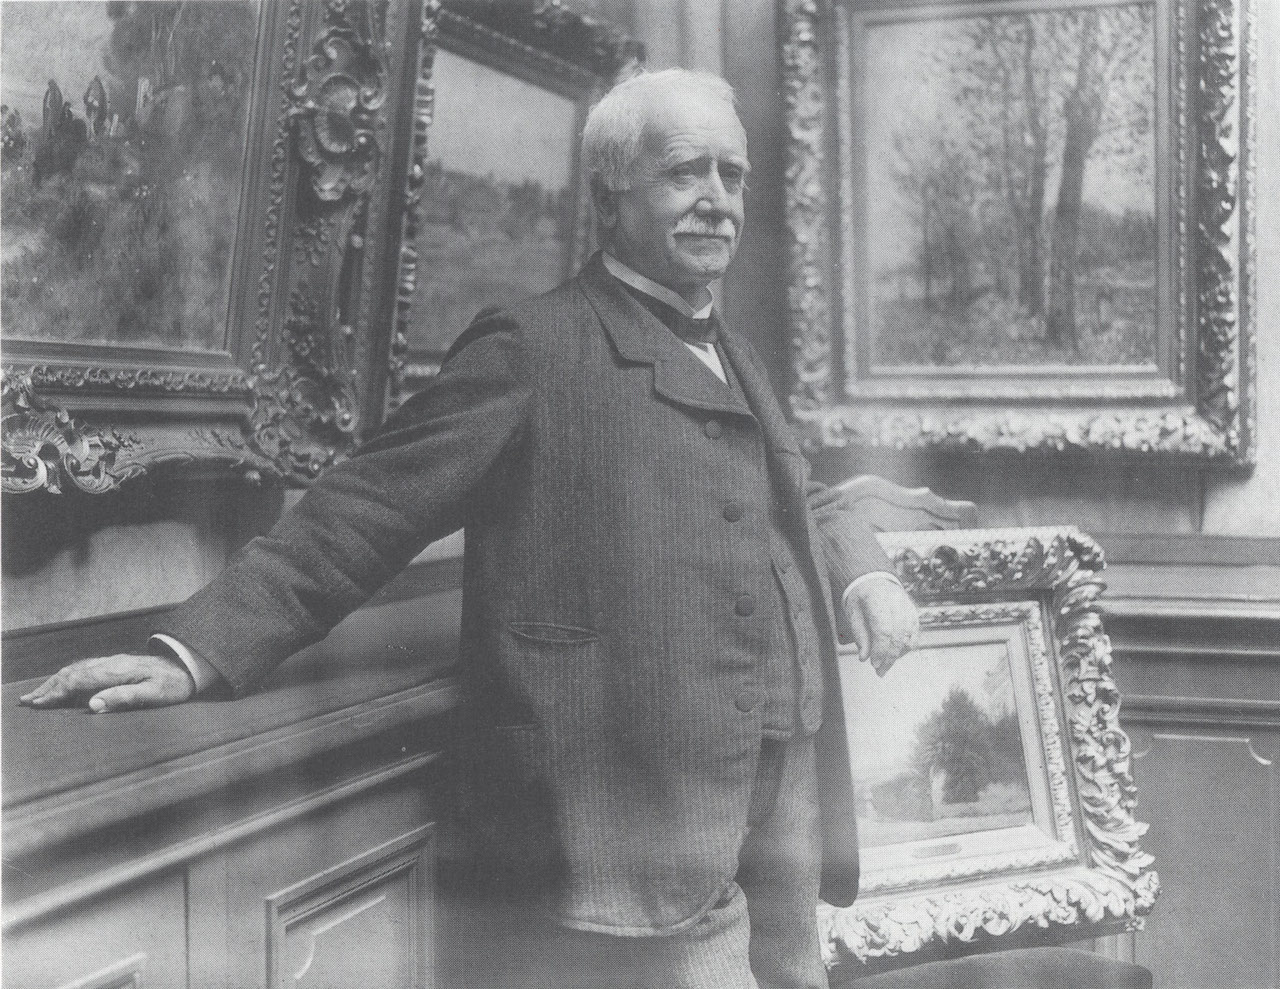 Photograph of Paul Durand-Ruel in his gallery, taken by Dornac, about 1910